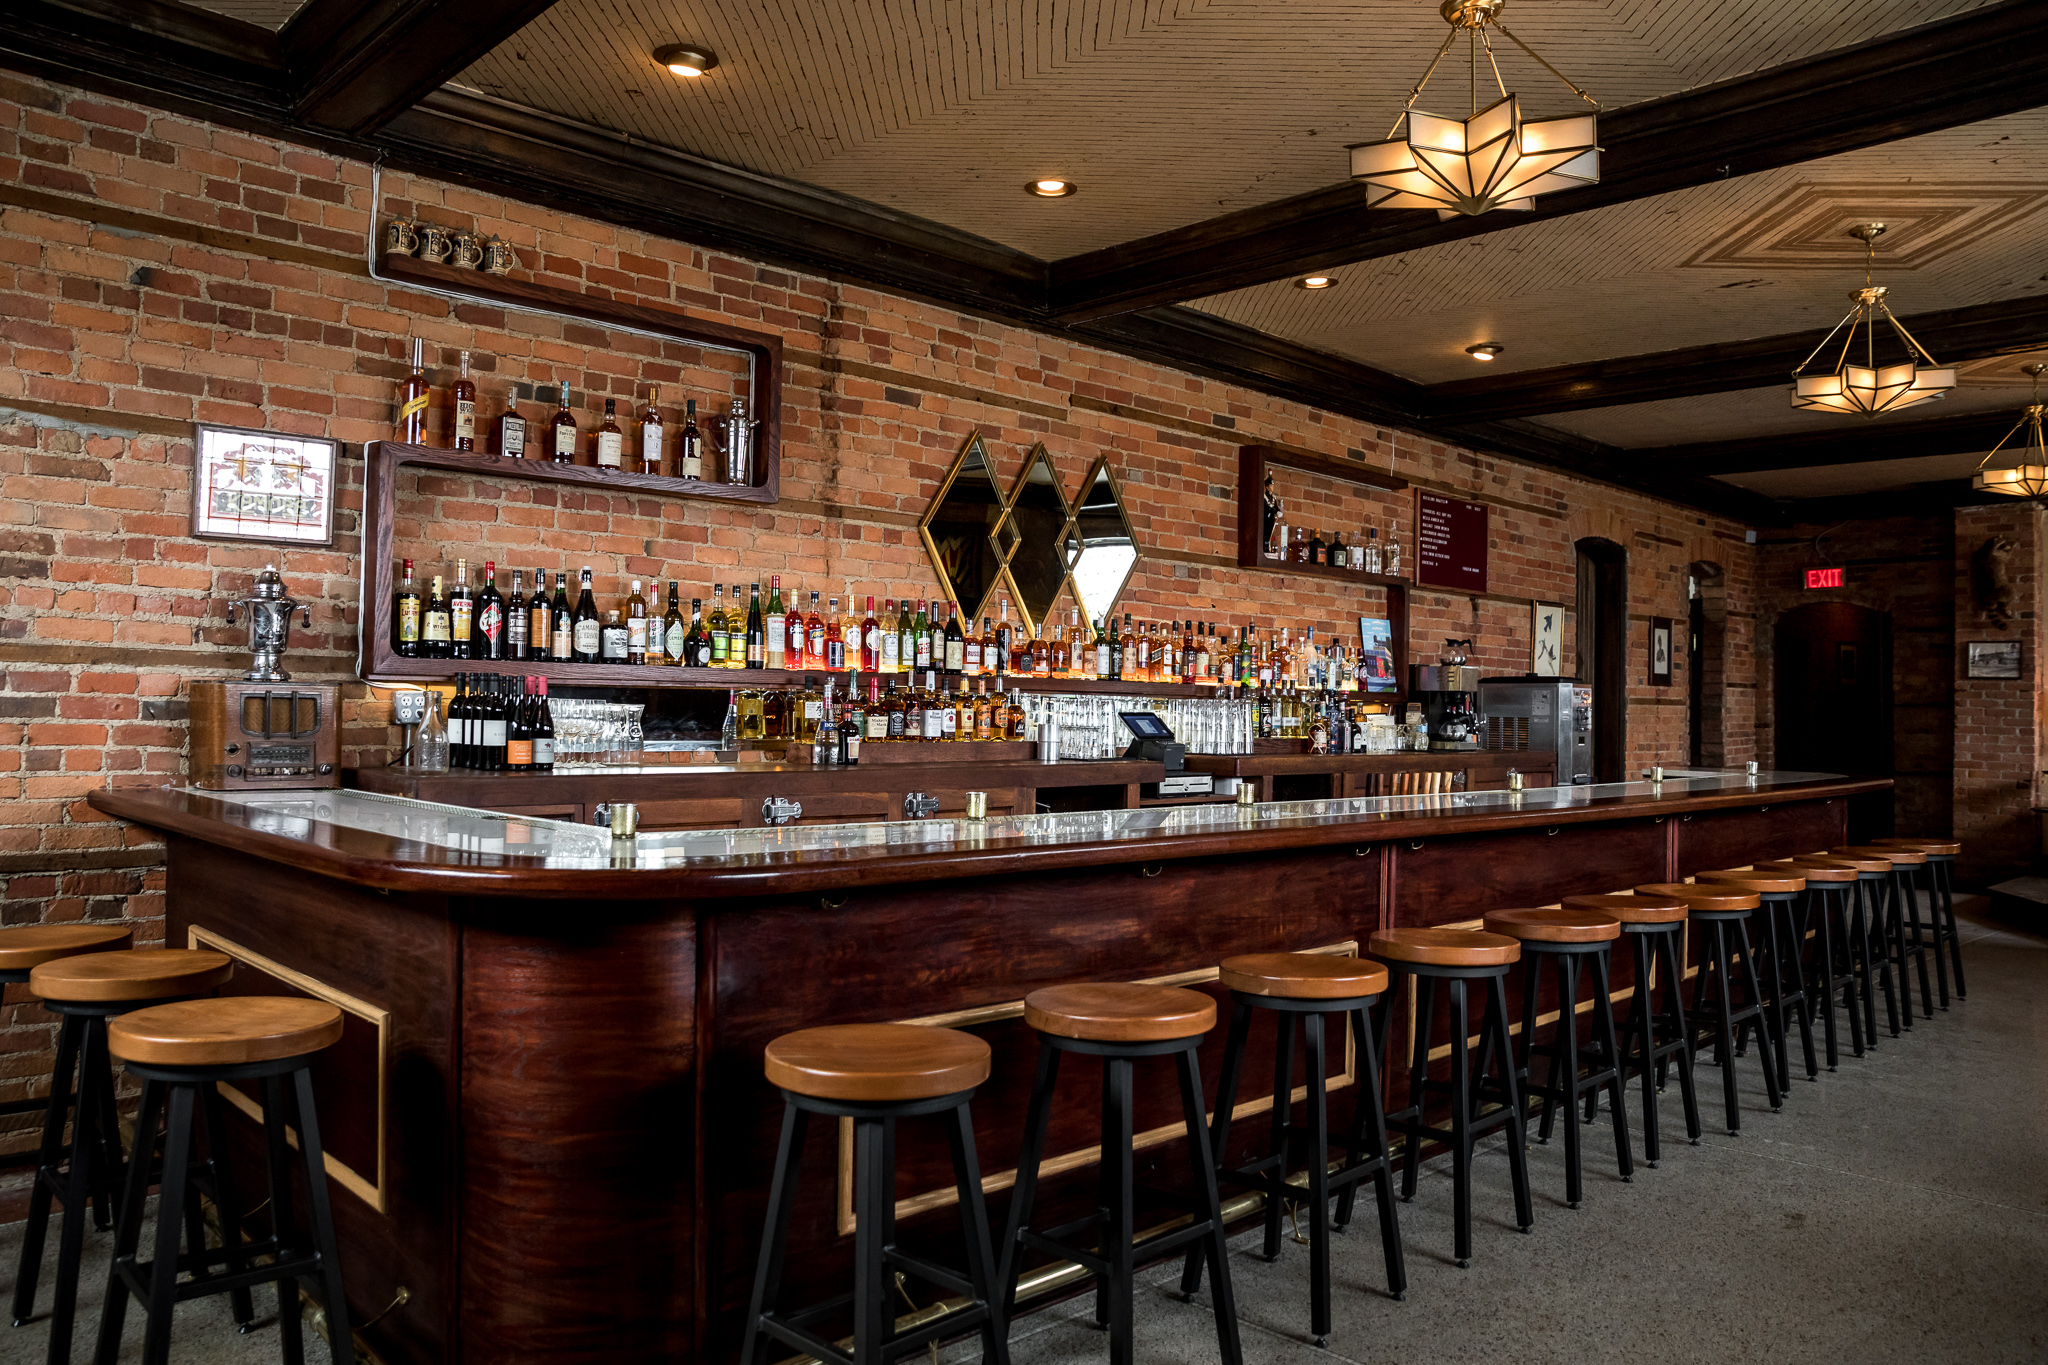 Inside The Kiesling, A Restored Century-Old Bar In